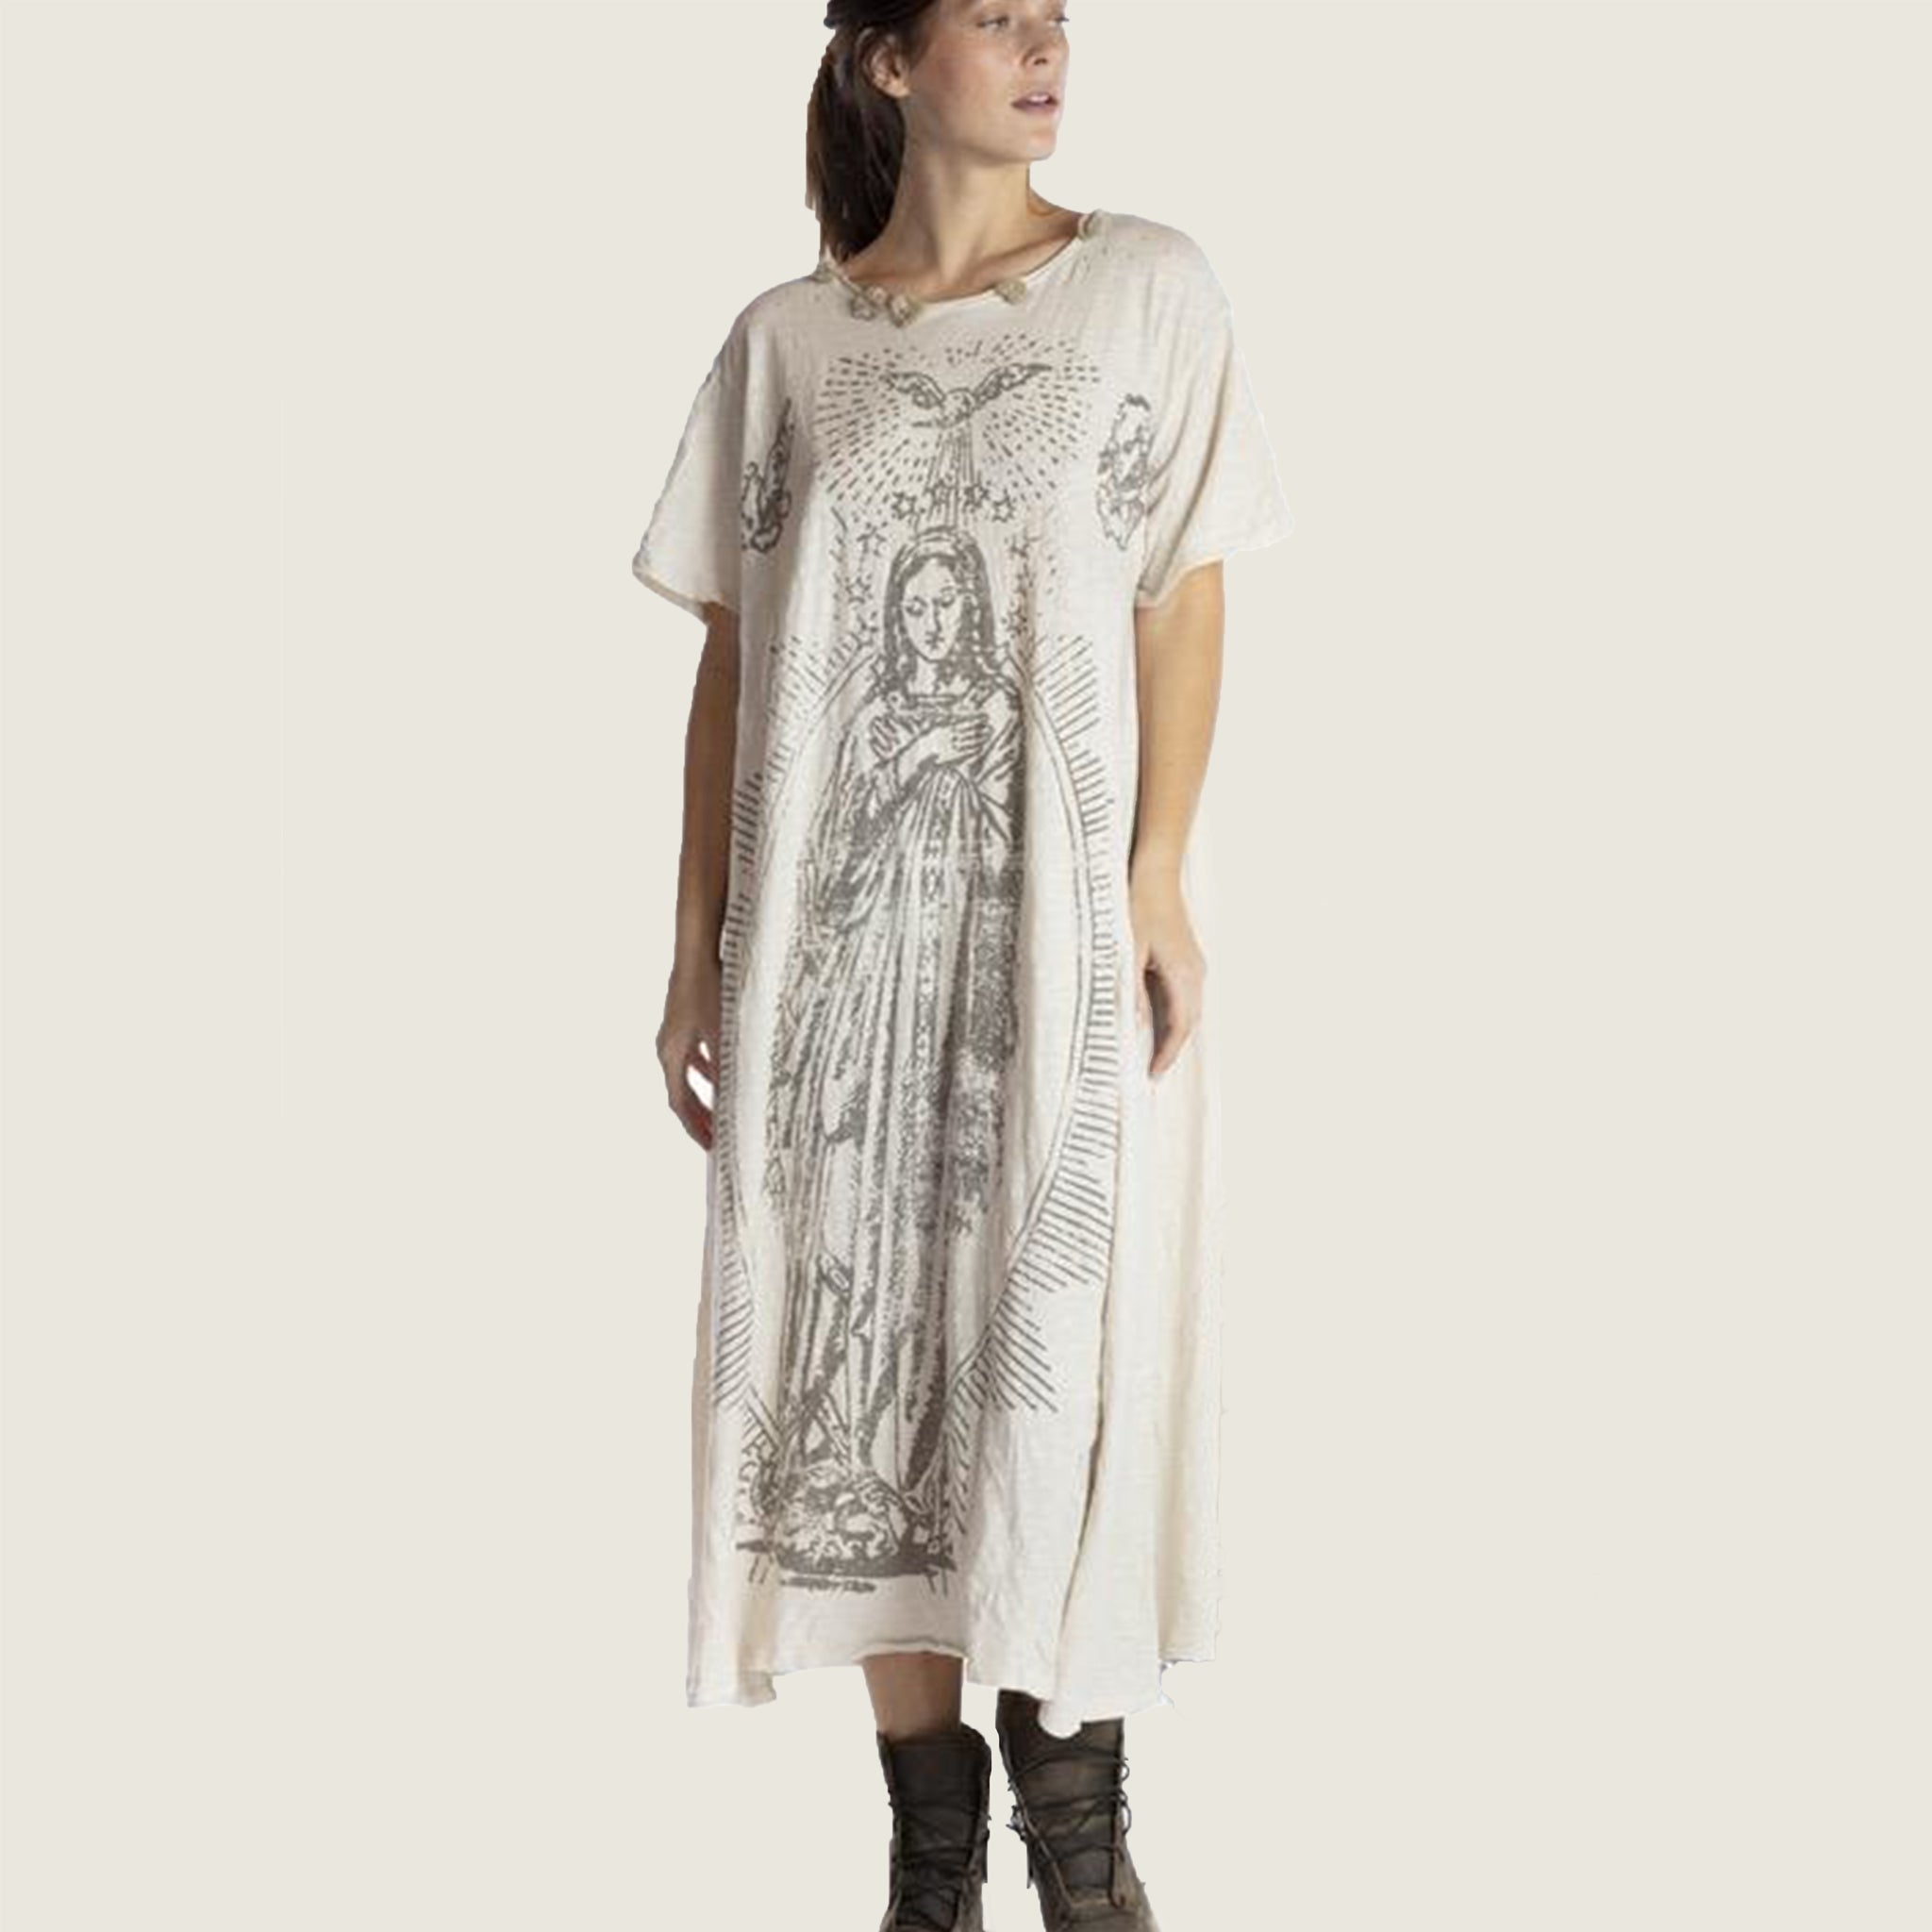 Dress 713 Moonlight - Blackbird General Store